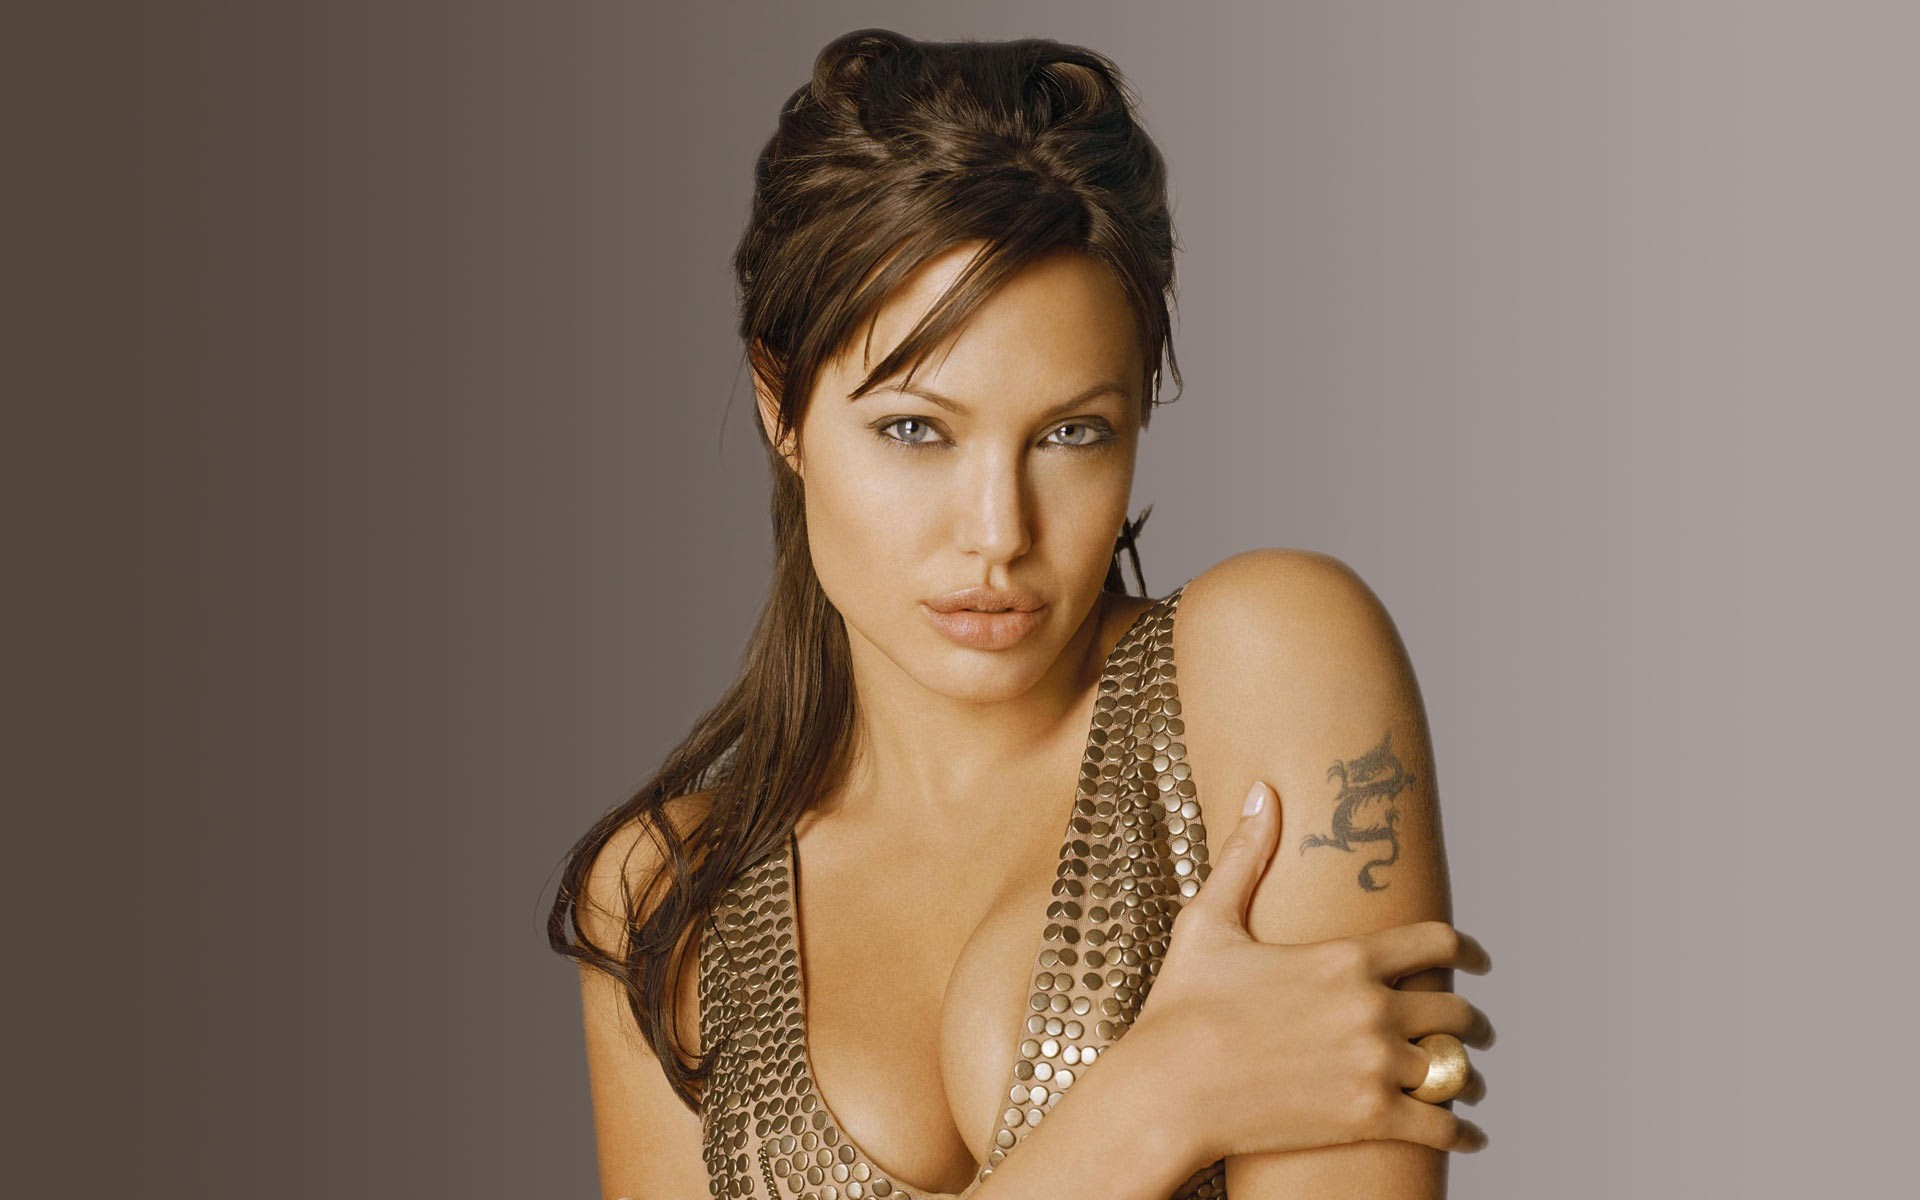 woman Angelina Jolie Simple HD Wallpaper